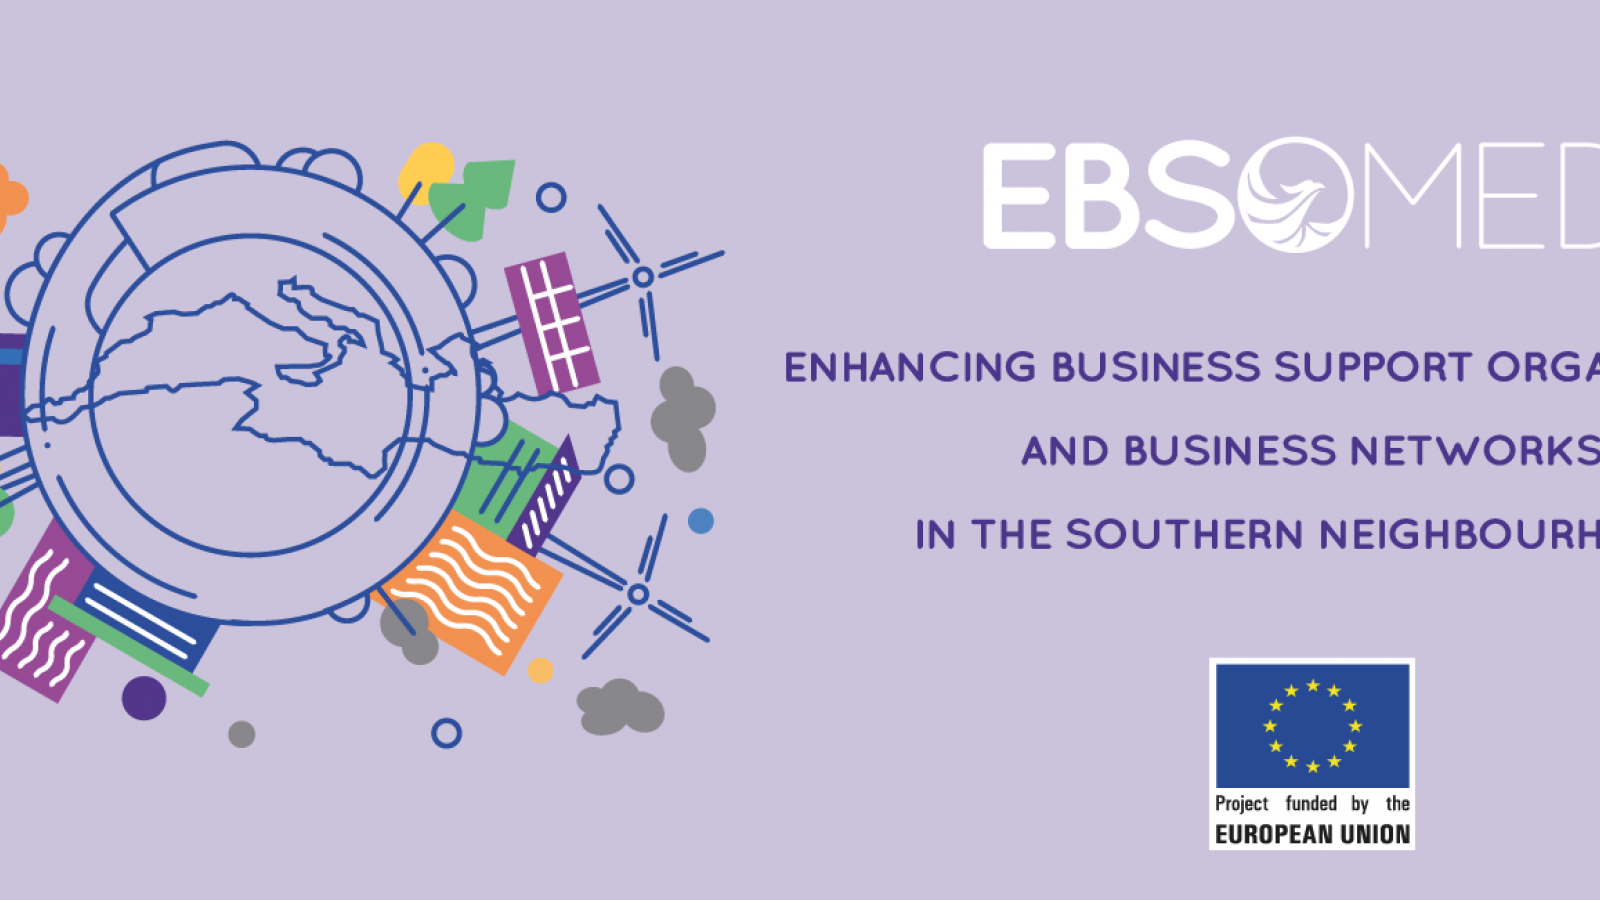 Enhancing Business Support Organisations and Business Networks in the Southern Neighbourhood